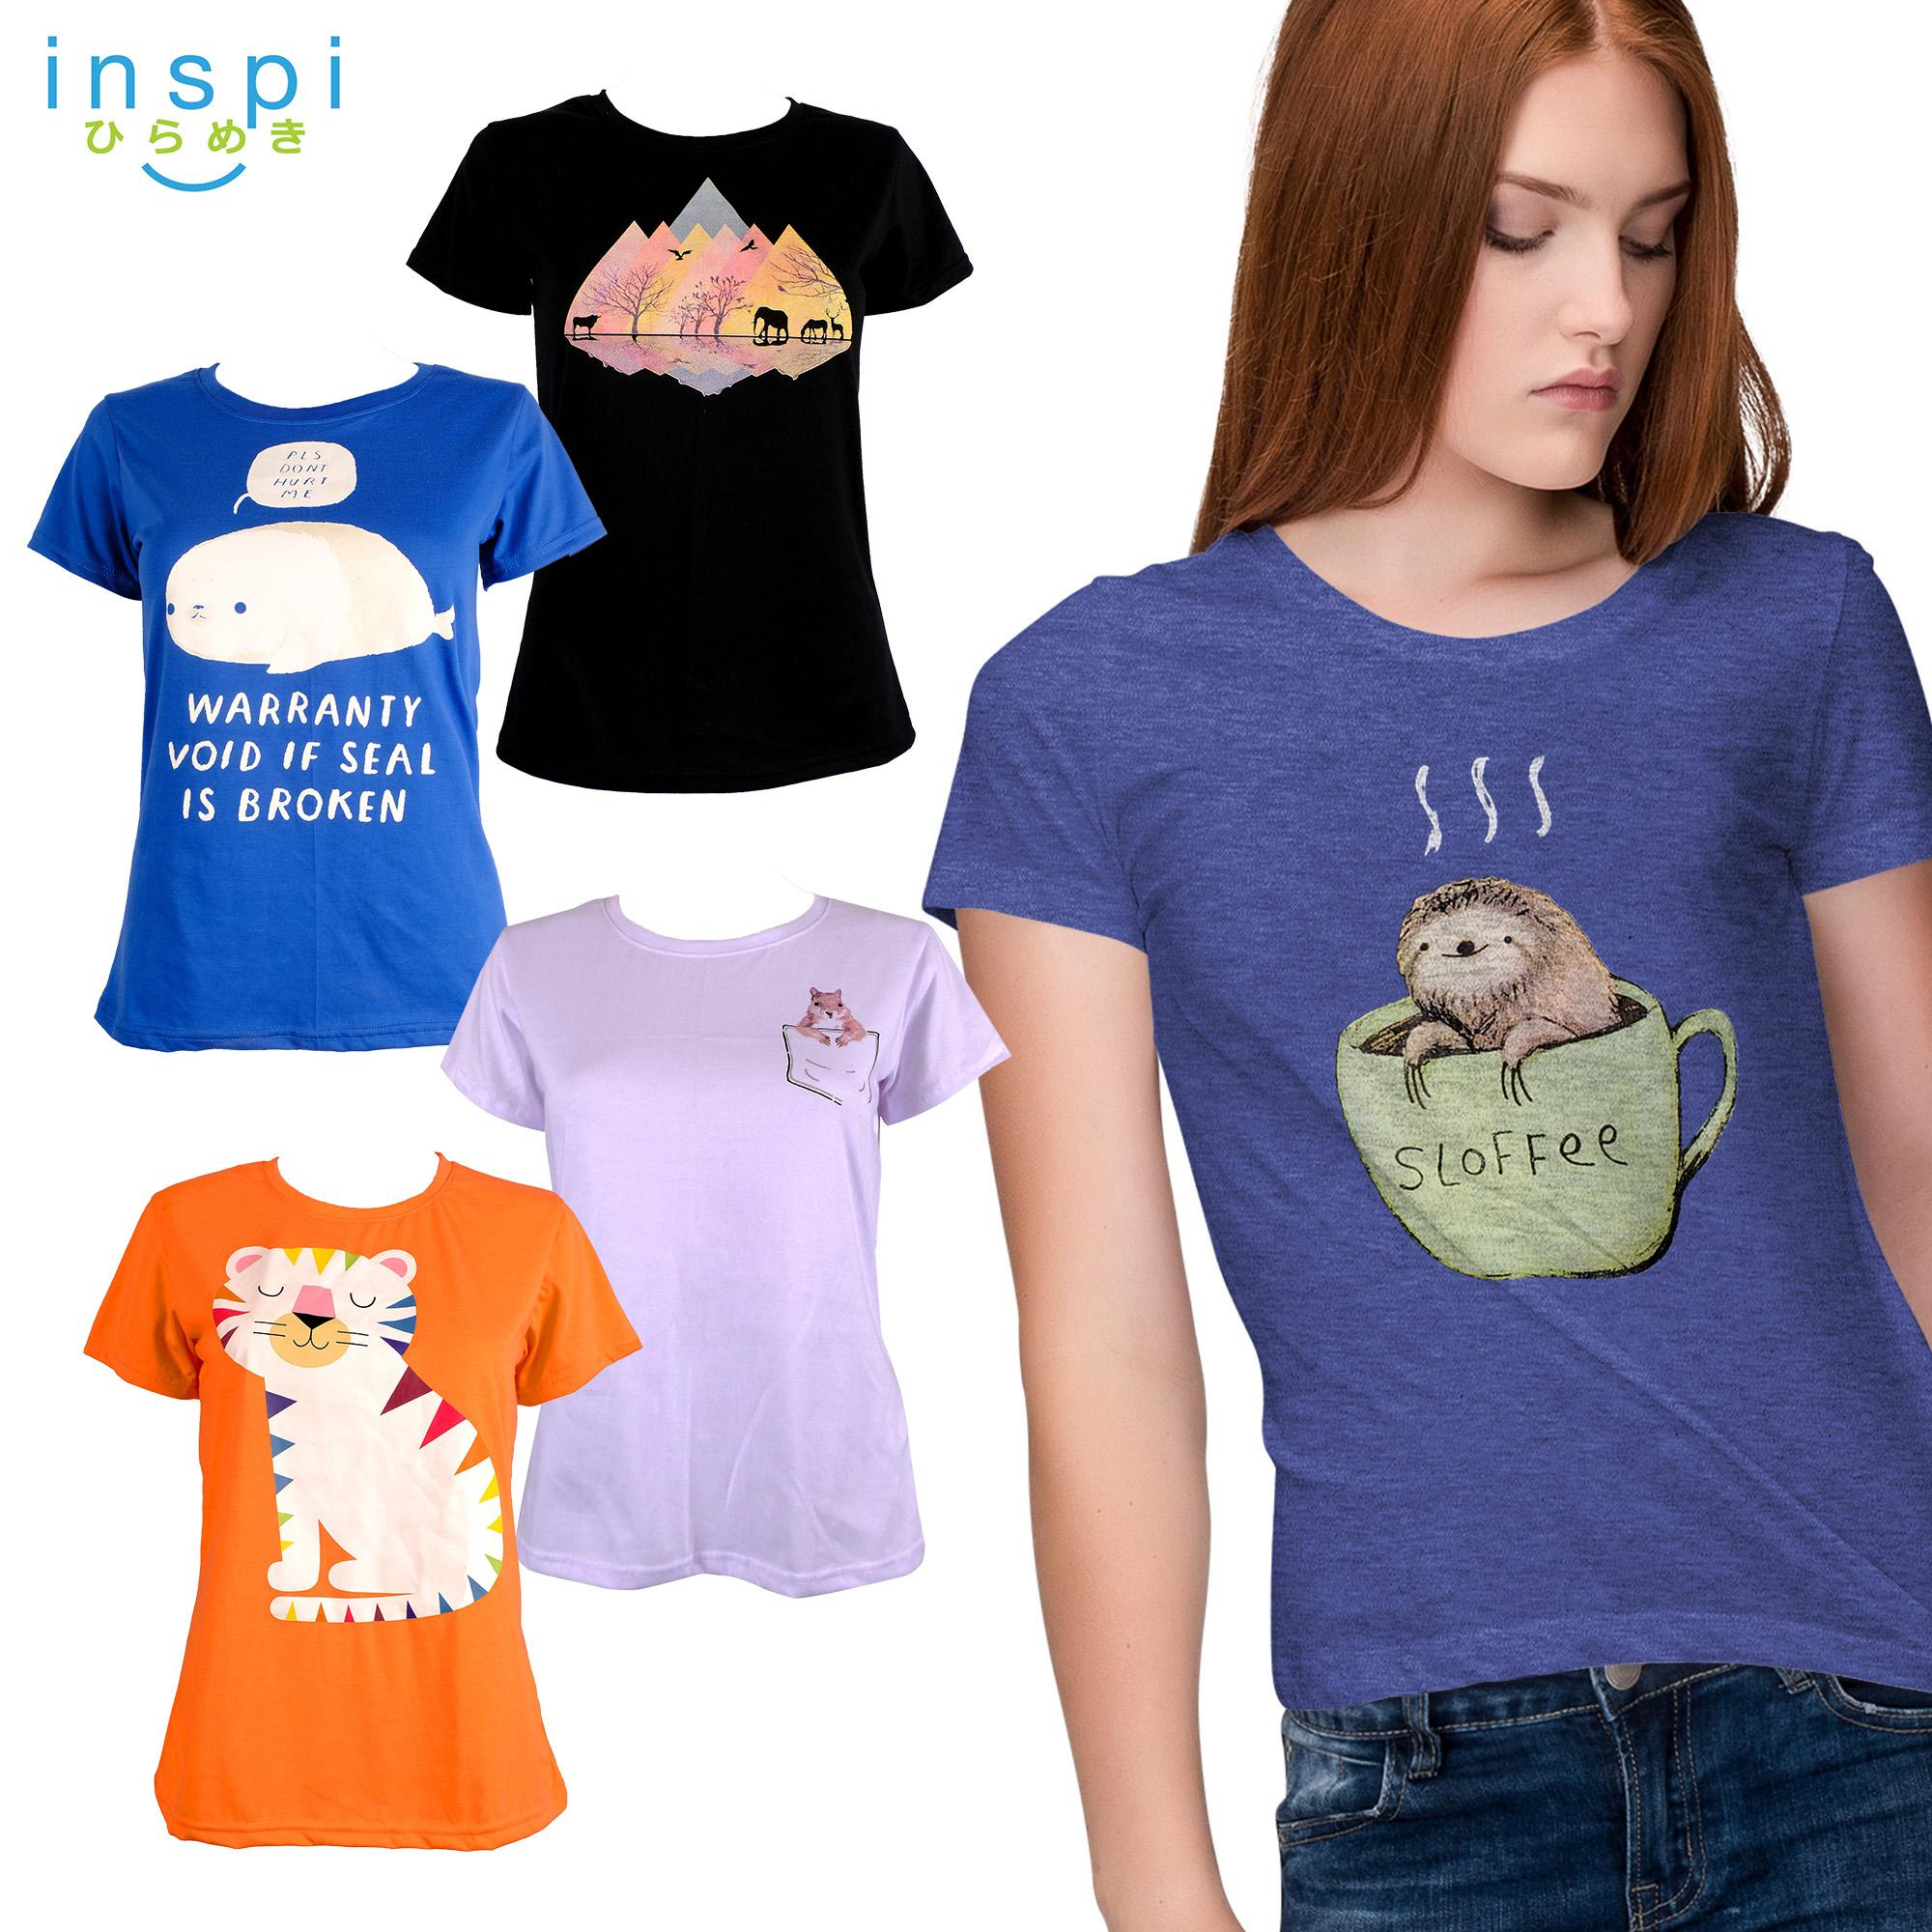 22da132d45 INSPI Tees Ladies Pet Collection tshirt printed graphic tee Ladies t shirt  shirts women tshirts for